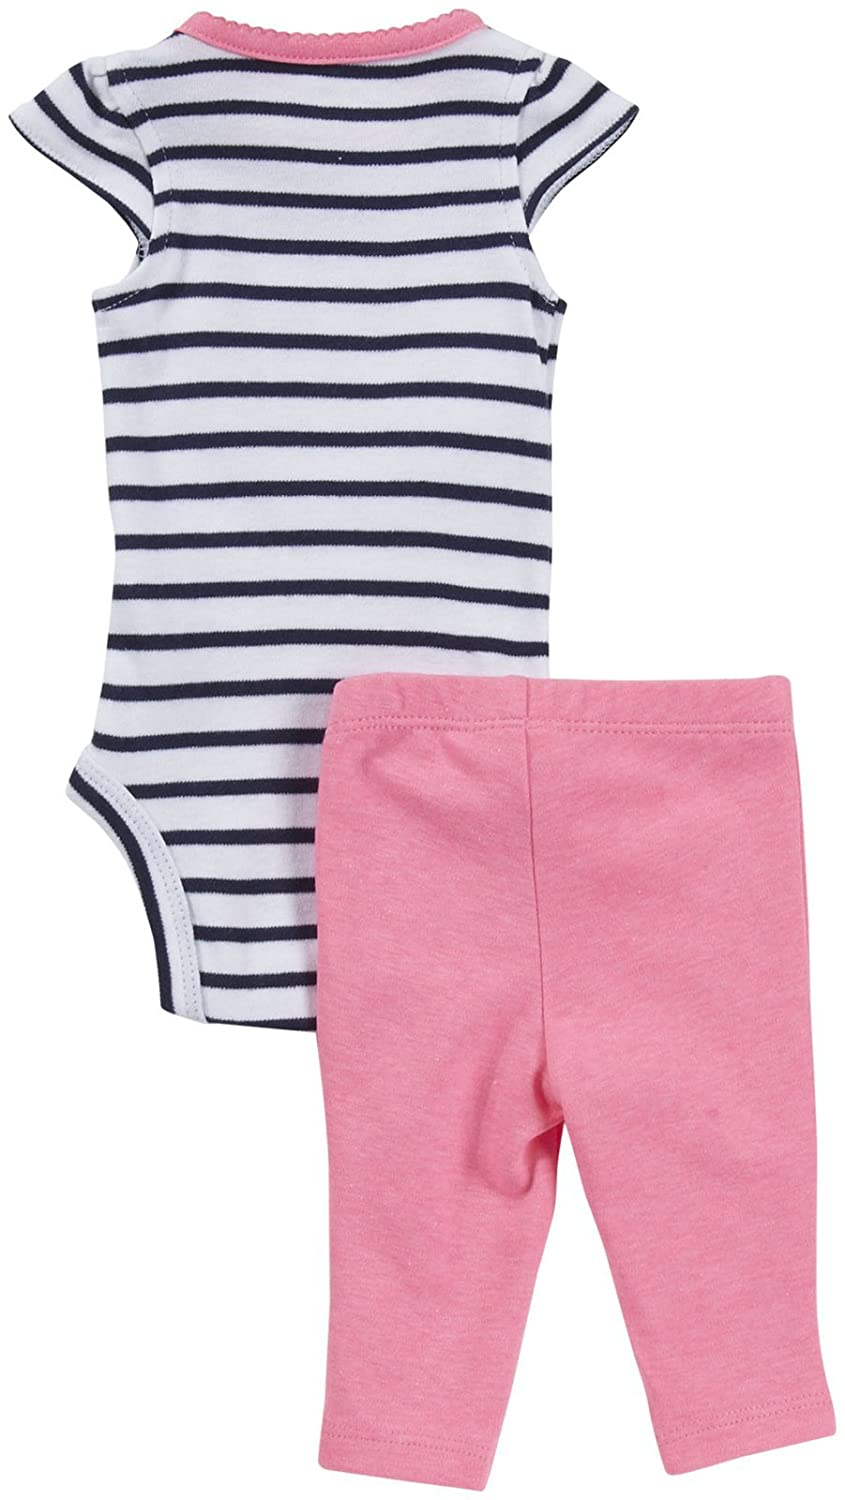 Crab-6 Months Baby Carters 2 Piece Striped Bodysuit and Pants